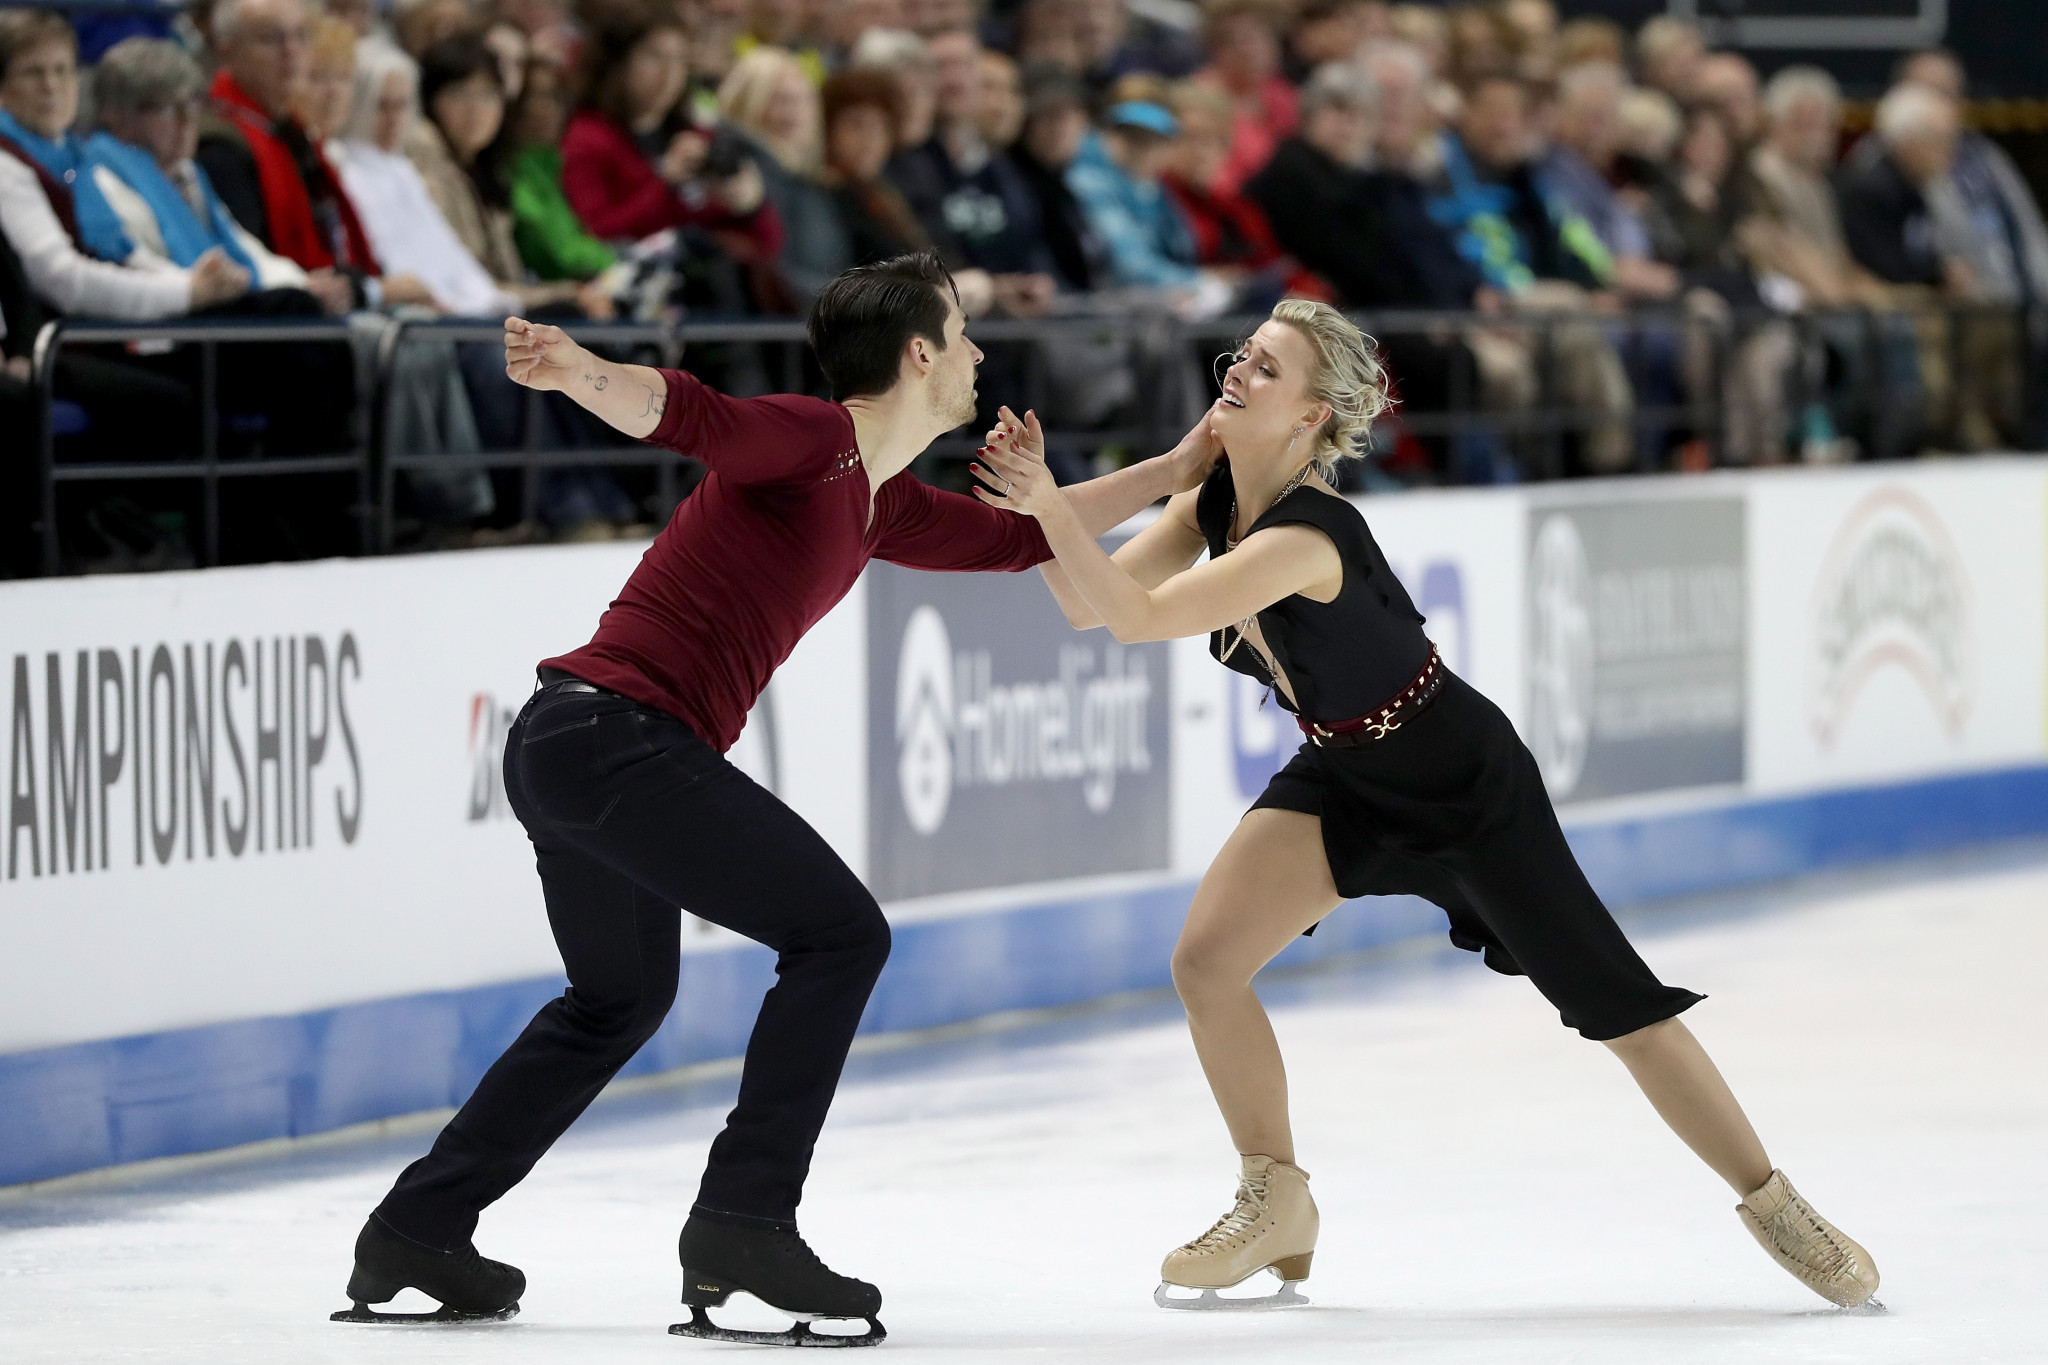 Zachary Donohue and Madison Hubbell are the clear favourites for the ice dance title at Skate America ©Getty Images